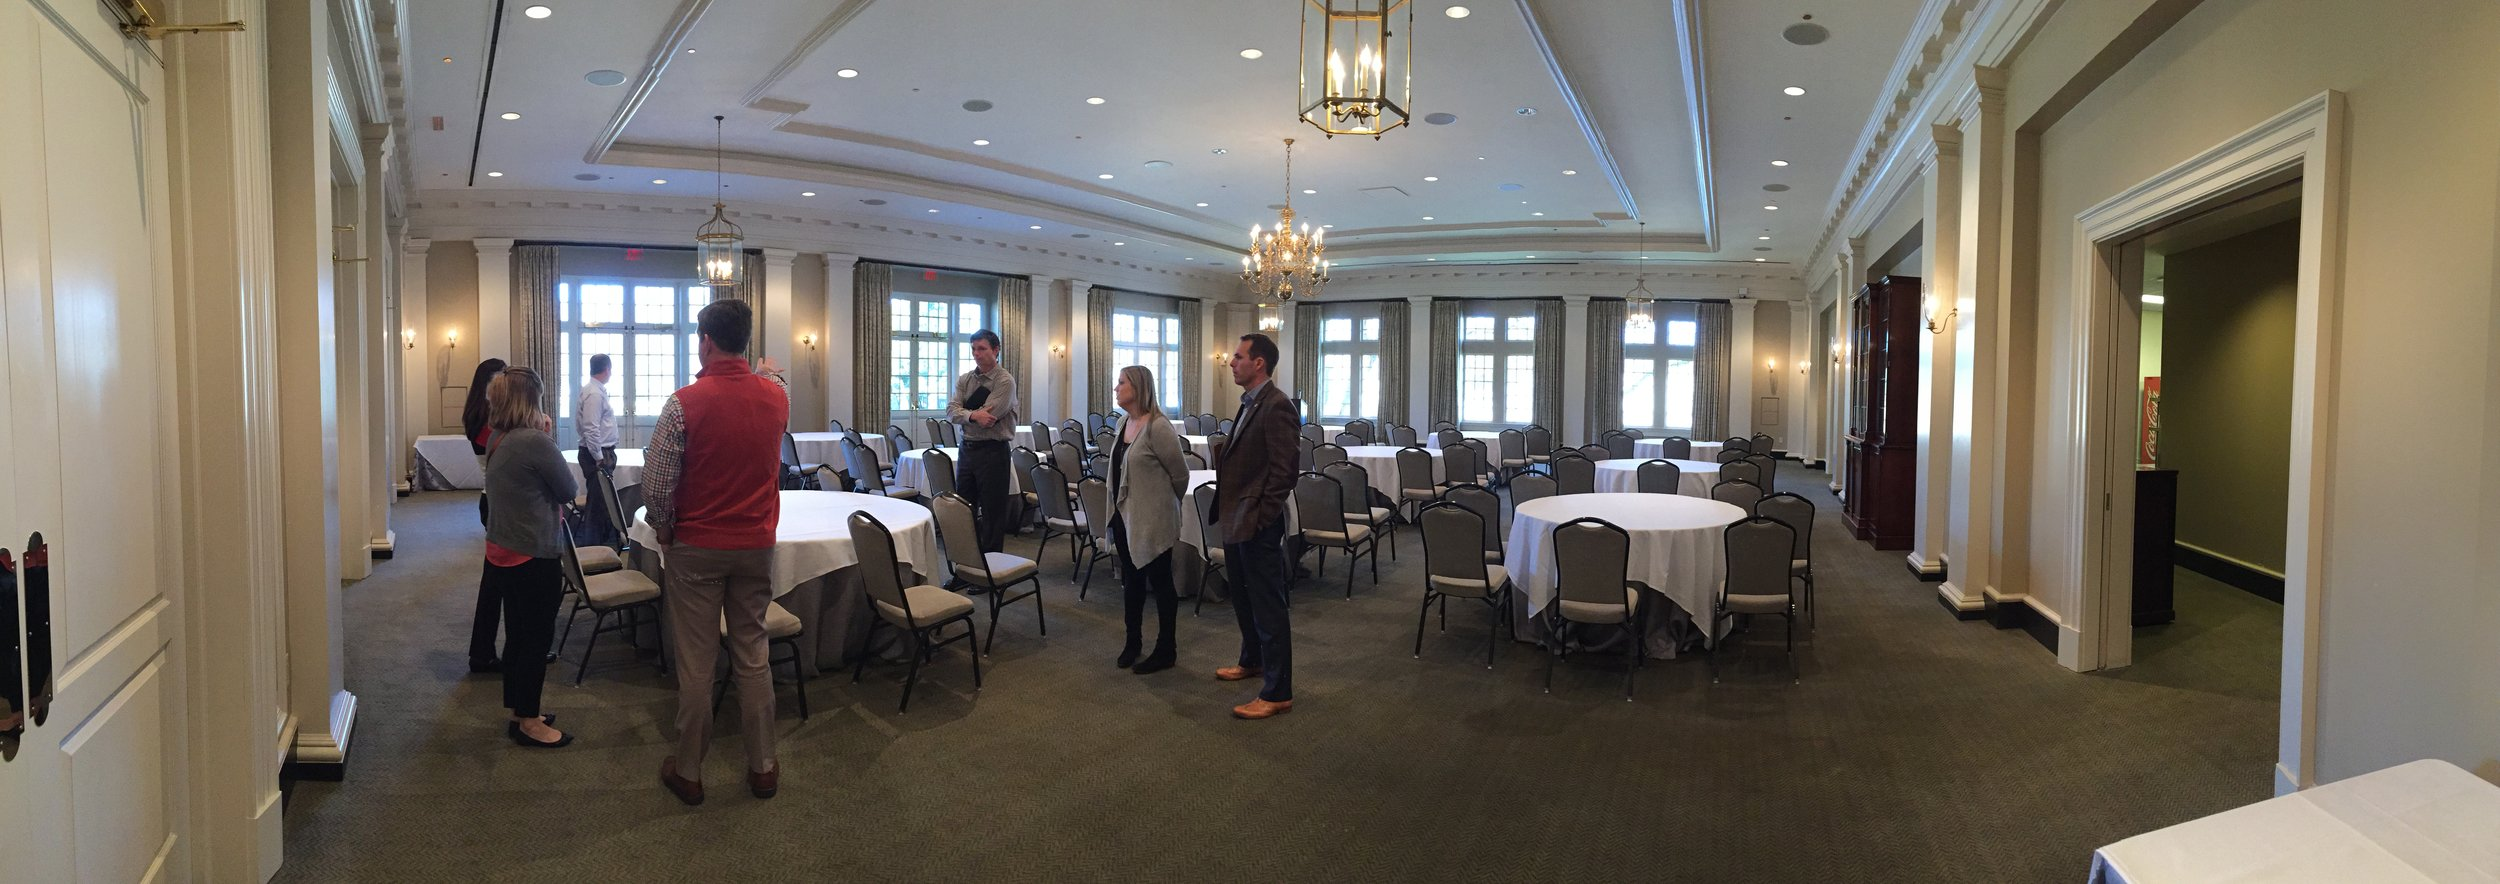 THIS IMAGE IS OF THE EMPTY BALLROOM